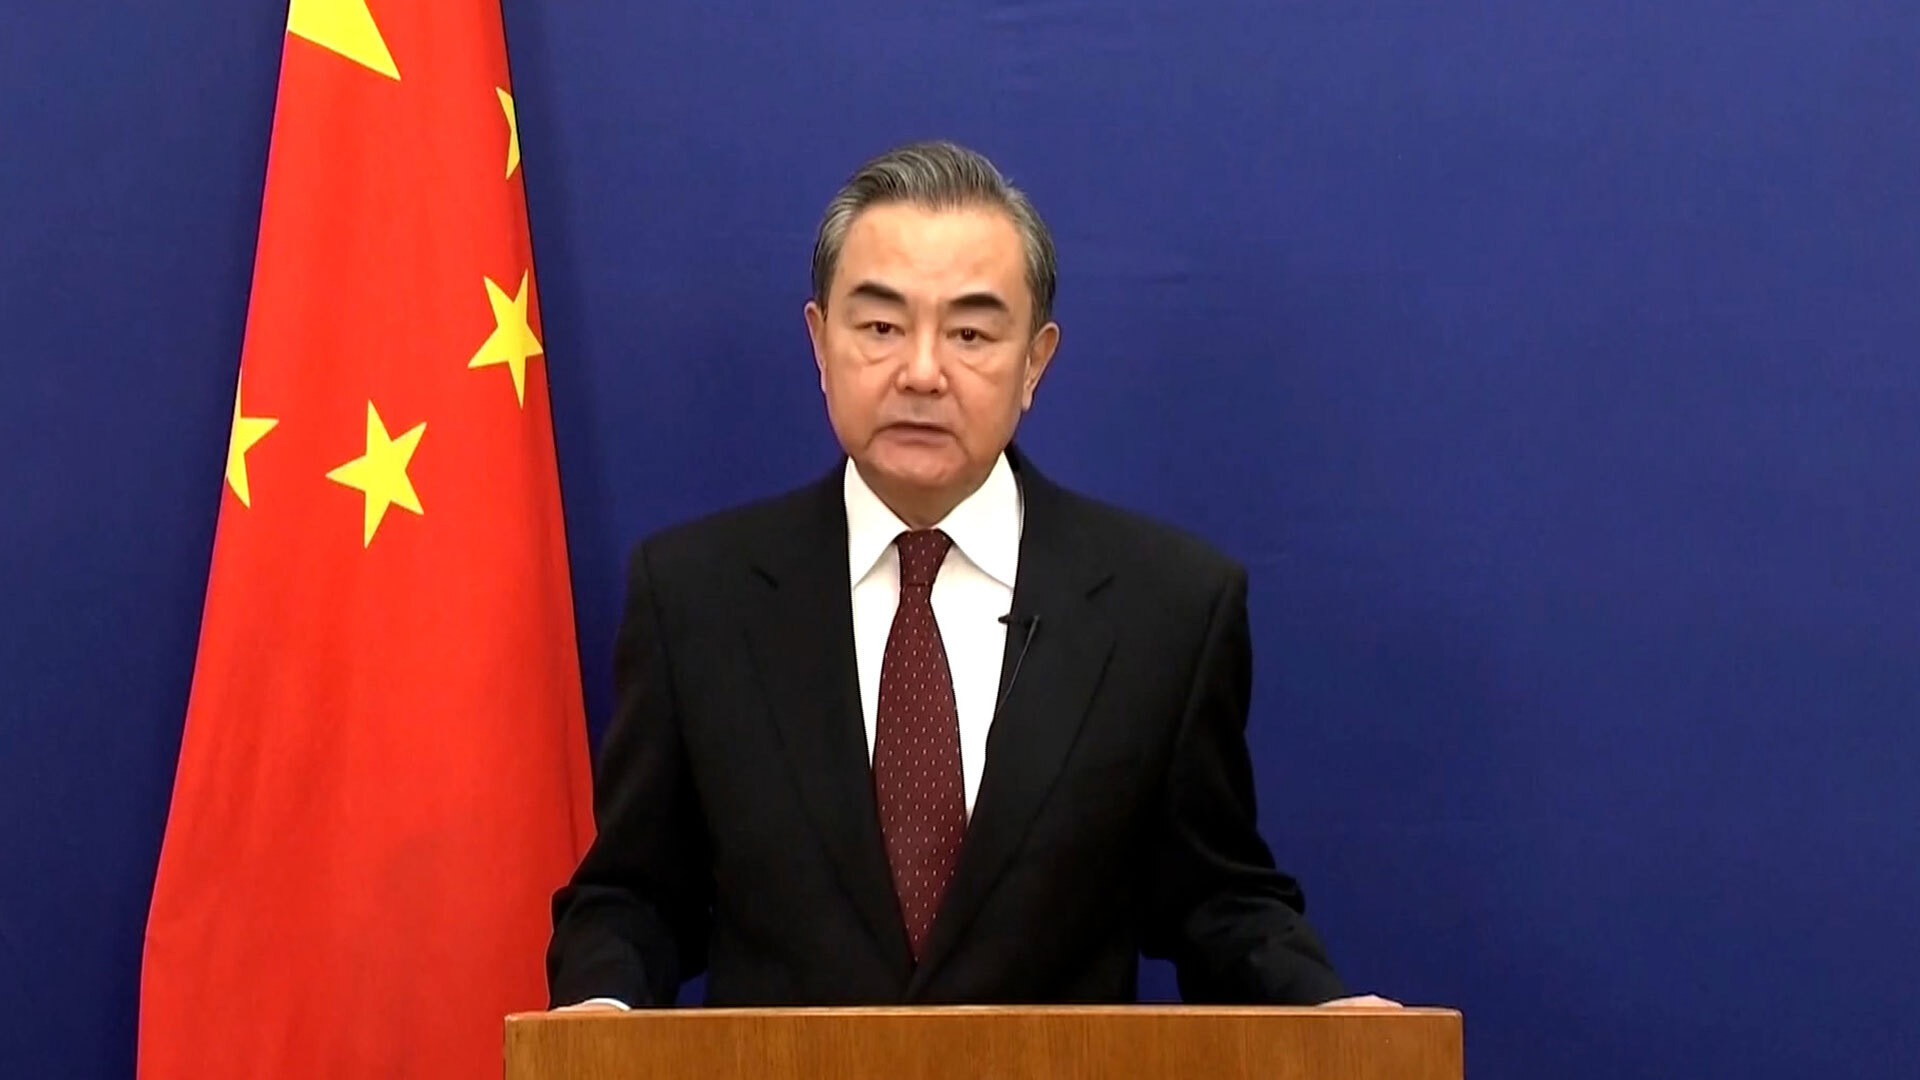 Wang Yi addresses UN special session on COVID-19